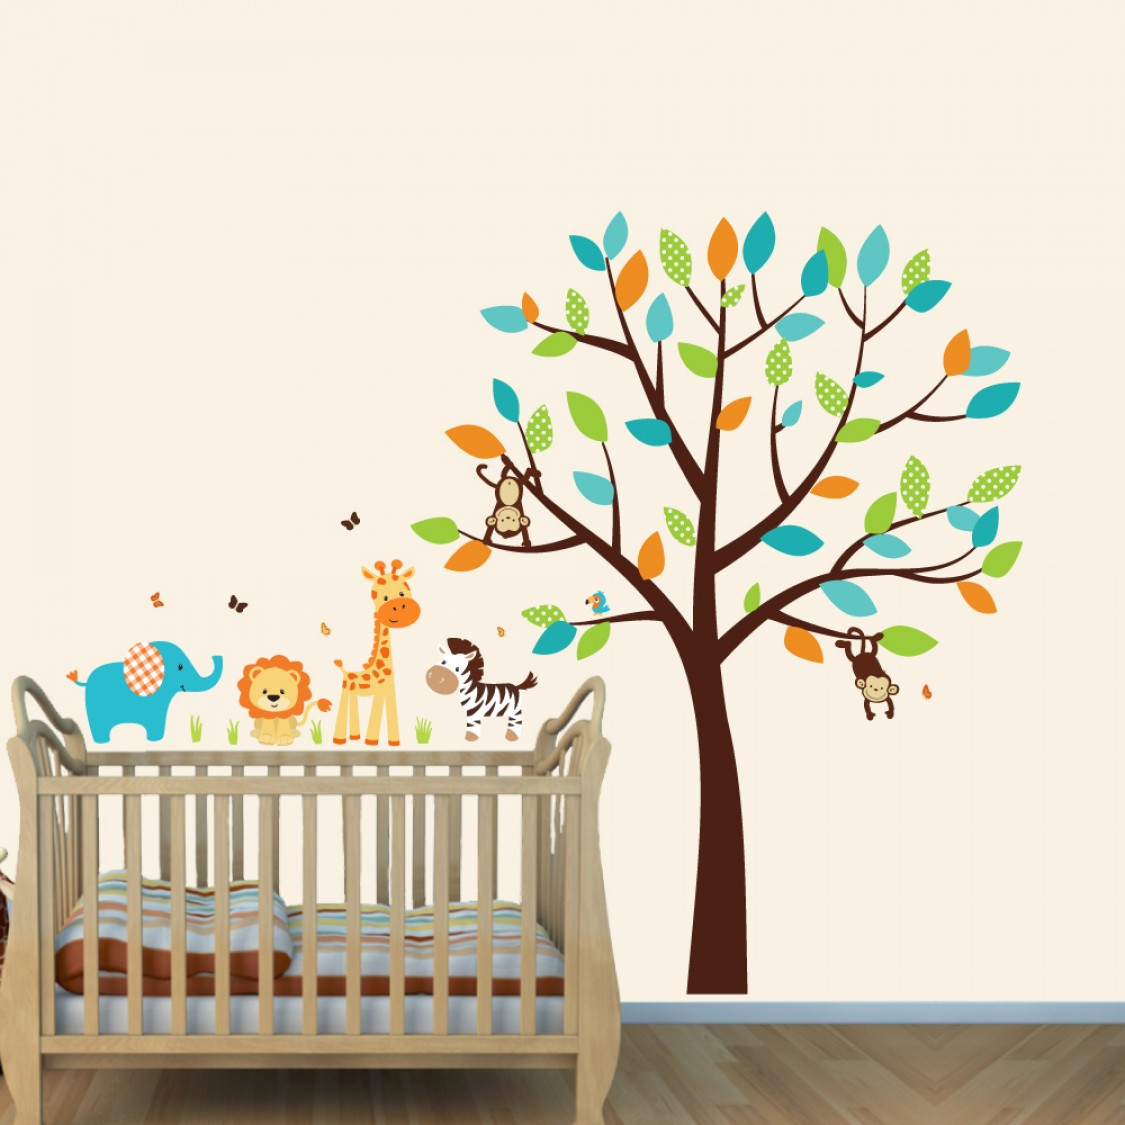 Jungle Wall Stickers For Nursery With Elephant Stickers For Kids Rooms